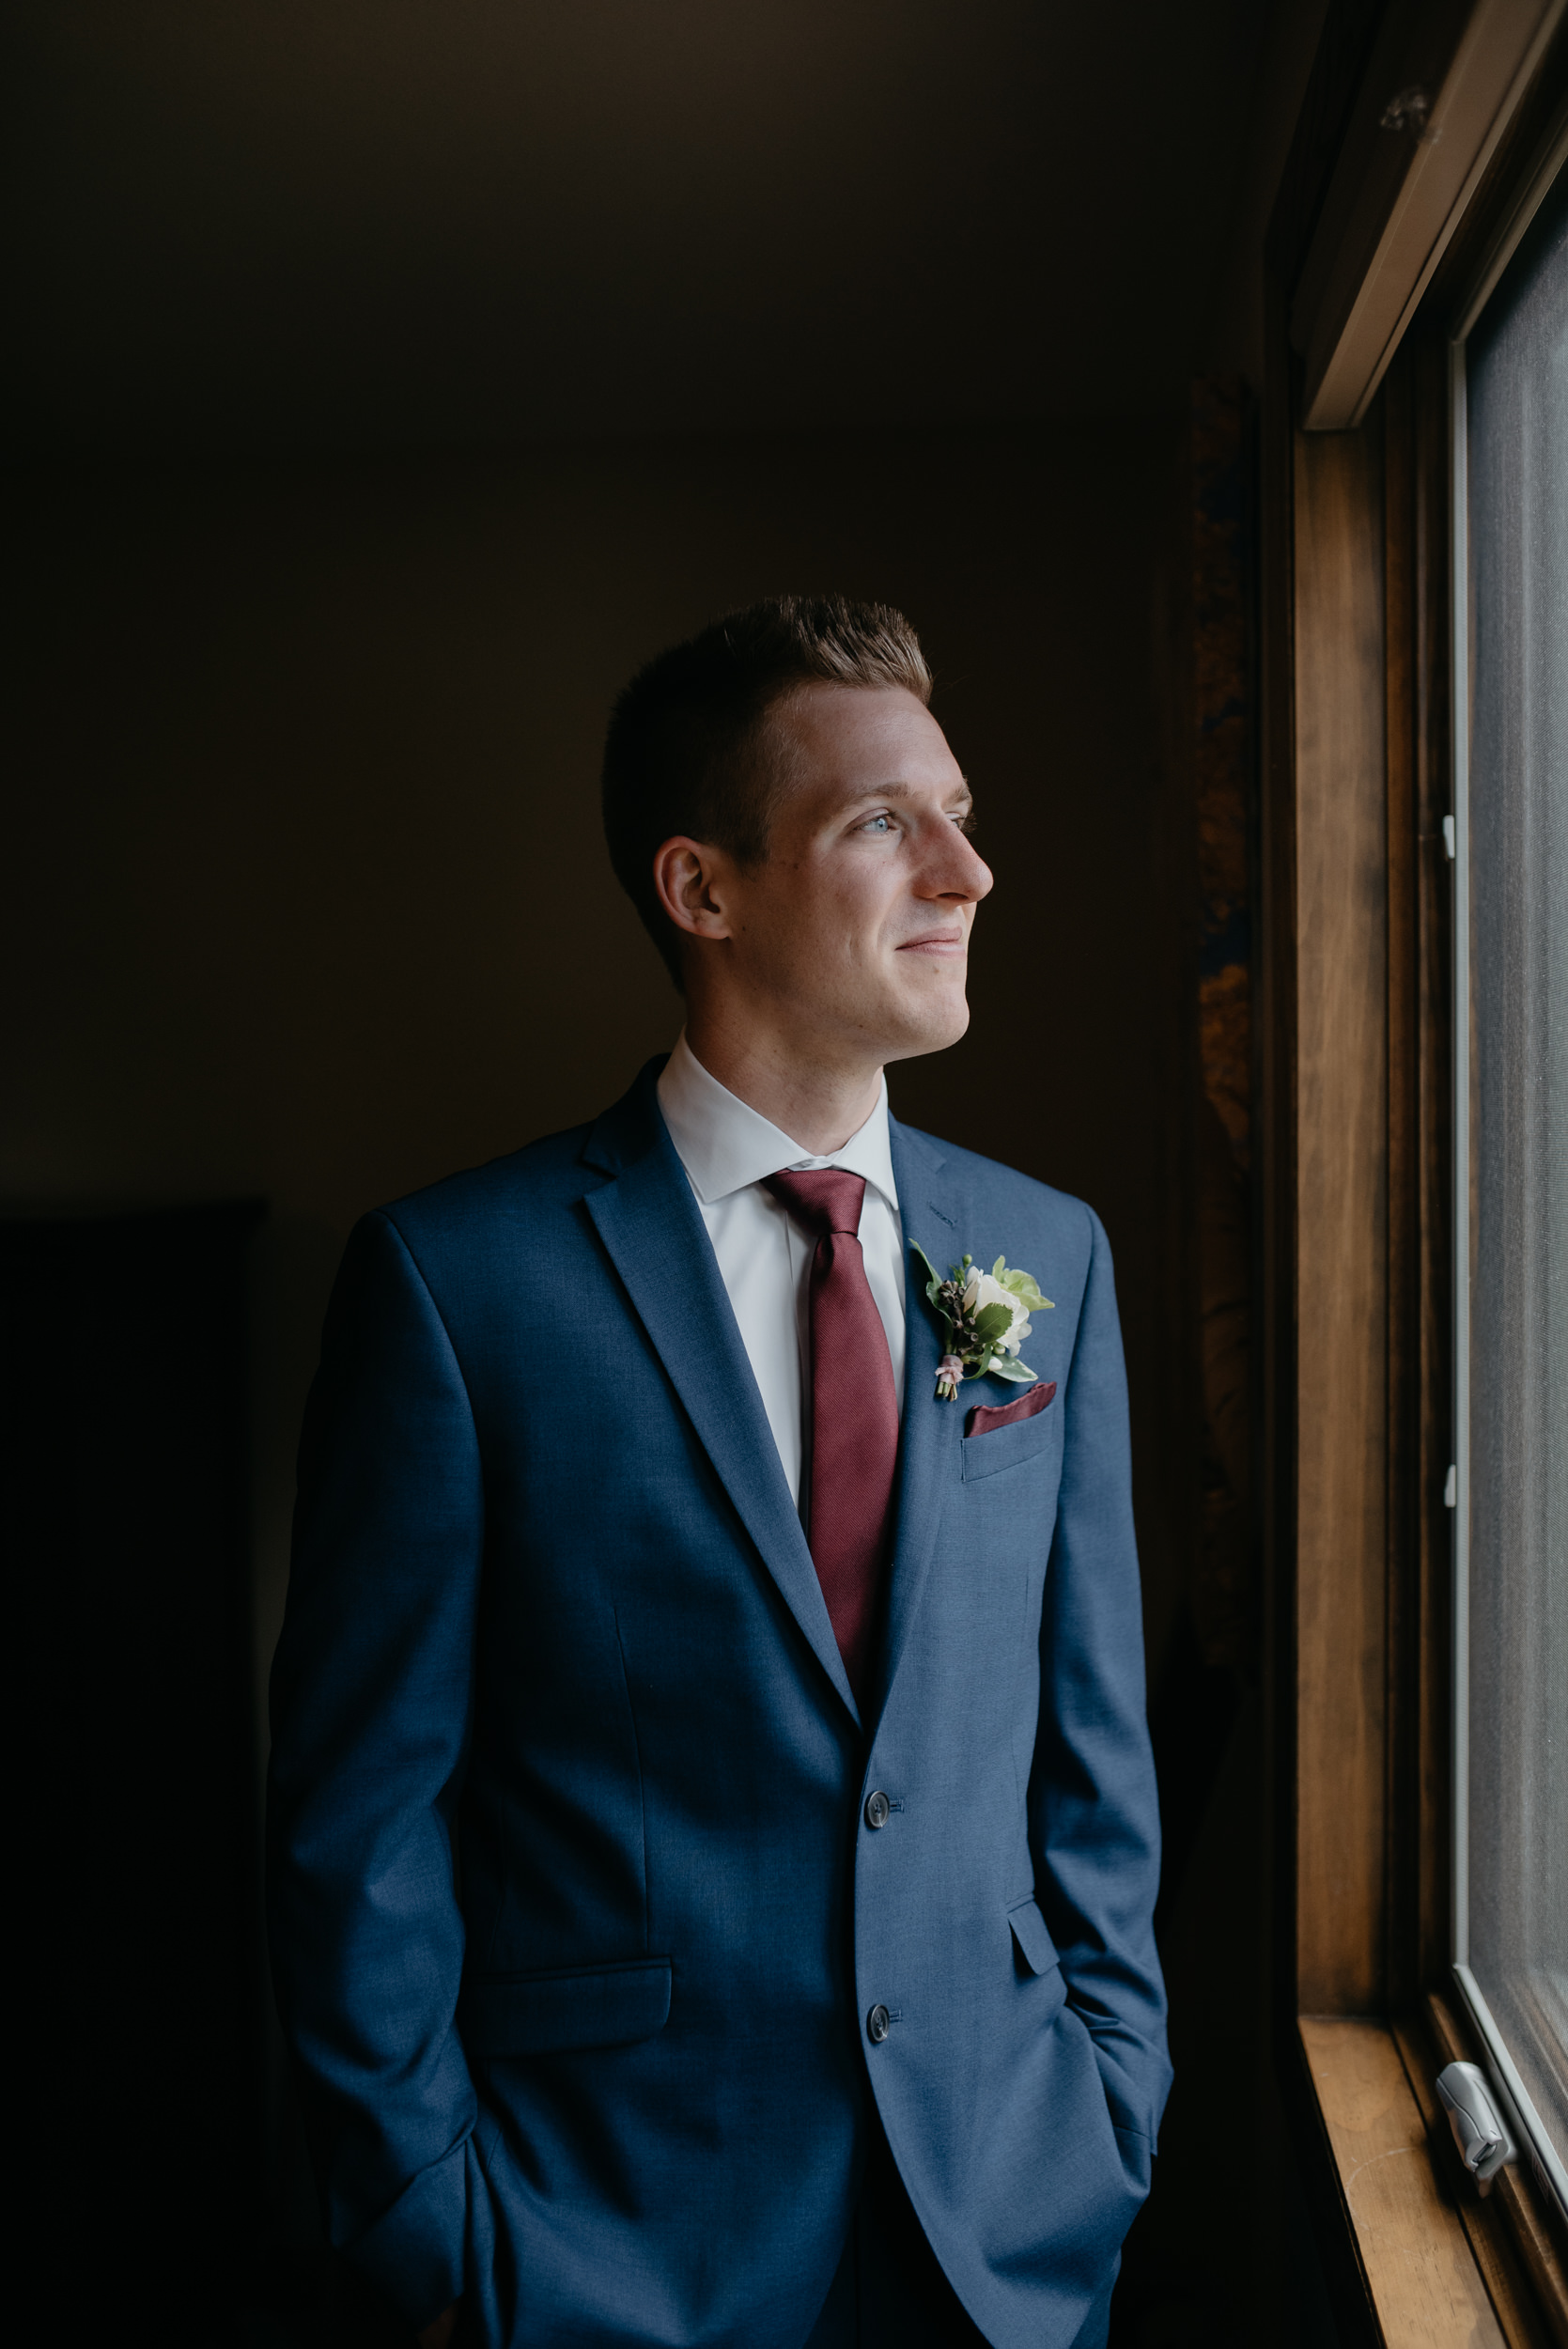 Photo of groom by Colorado wedding photographer